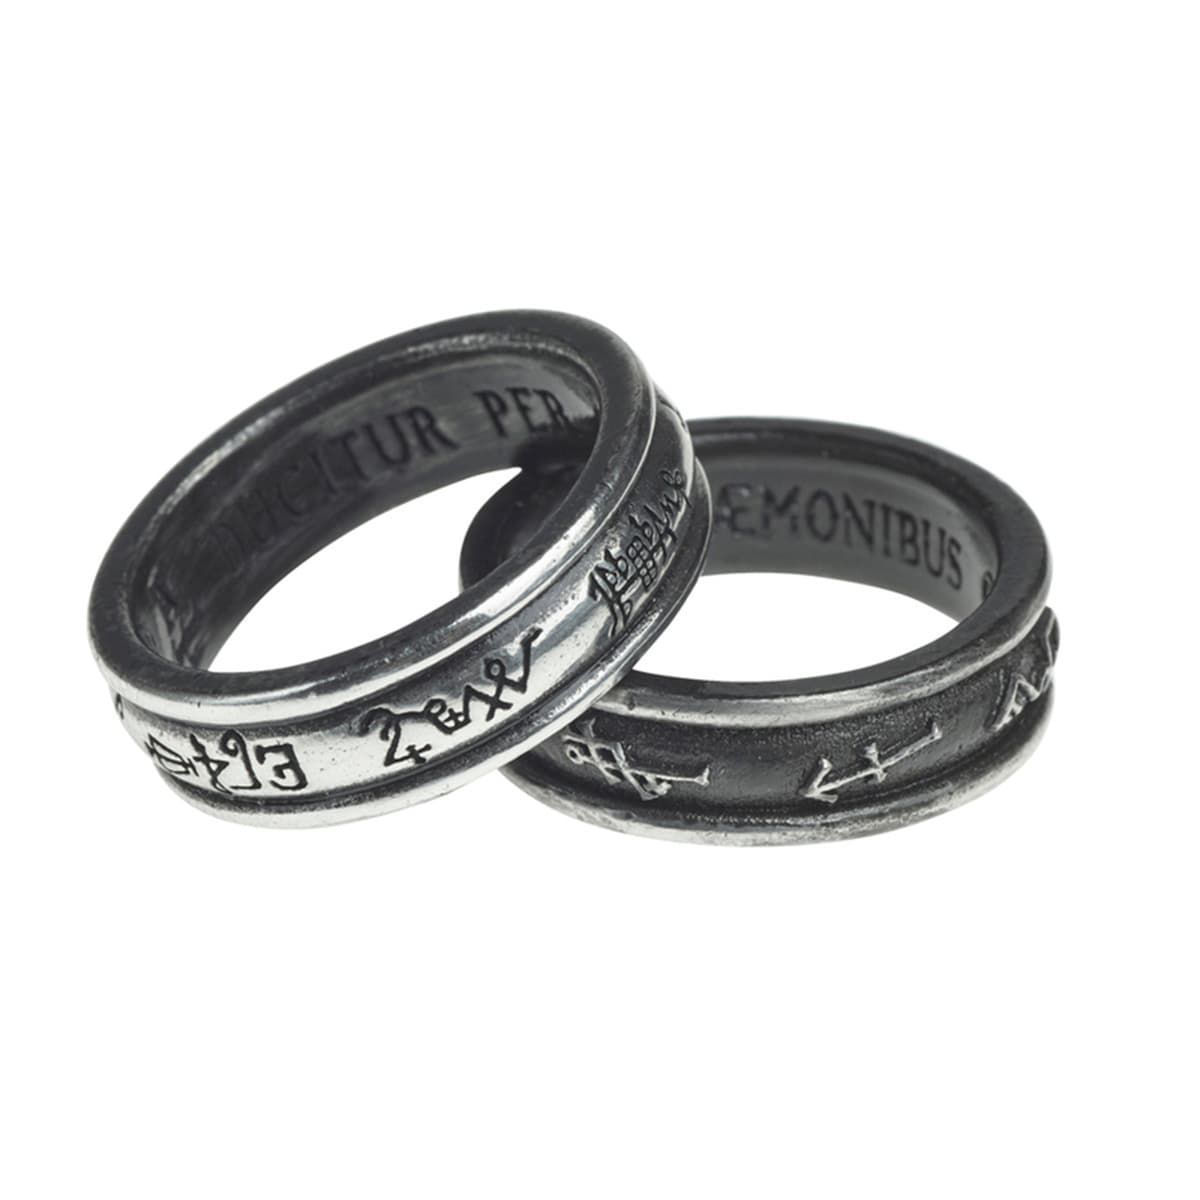 Alchemy Demon Black & Angel White Pewter Rings inscribed with signatures of Angels and demons. Turn the rings to align the signatures